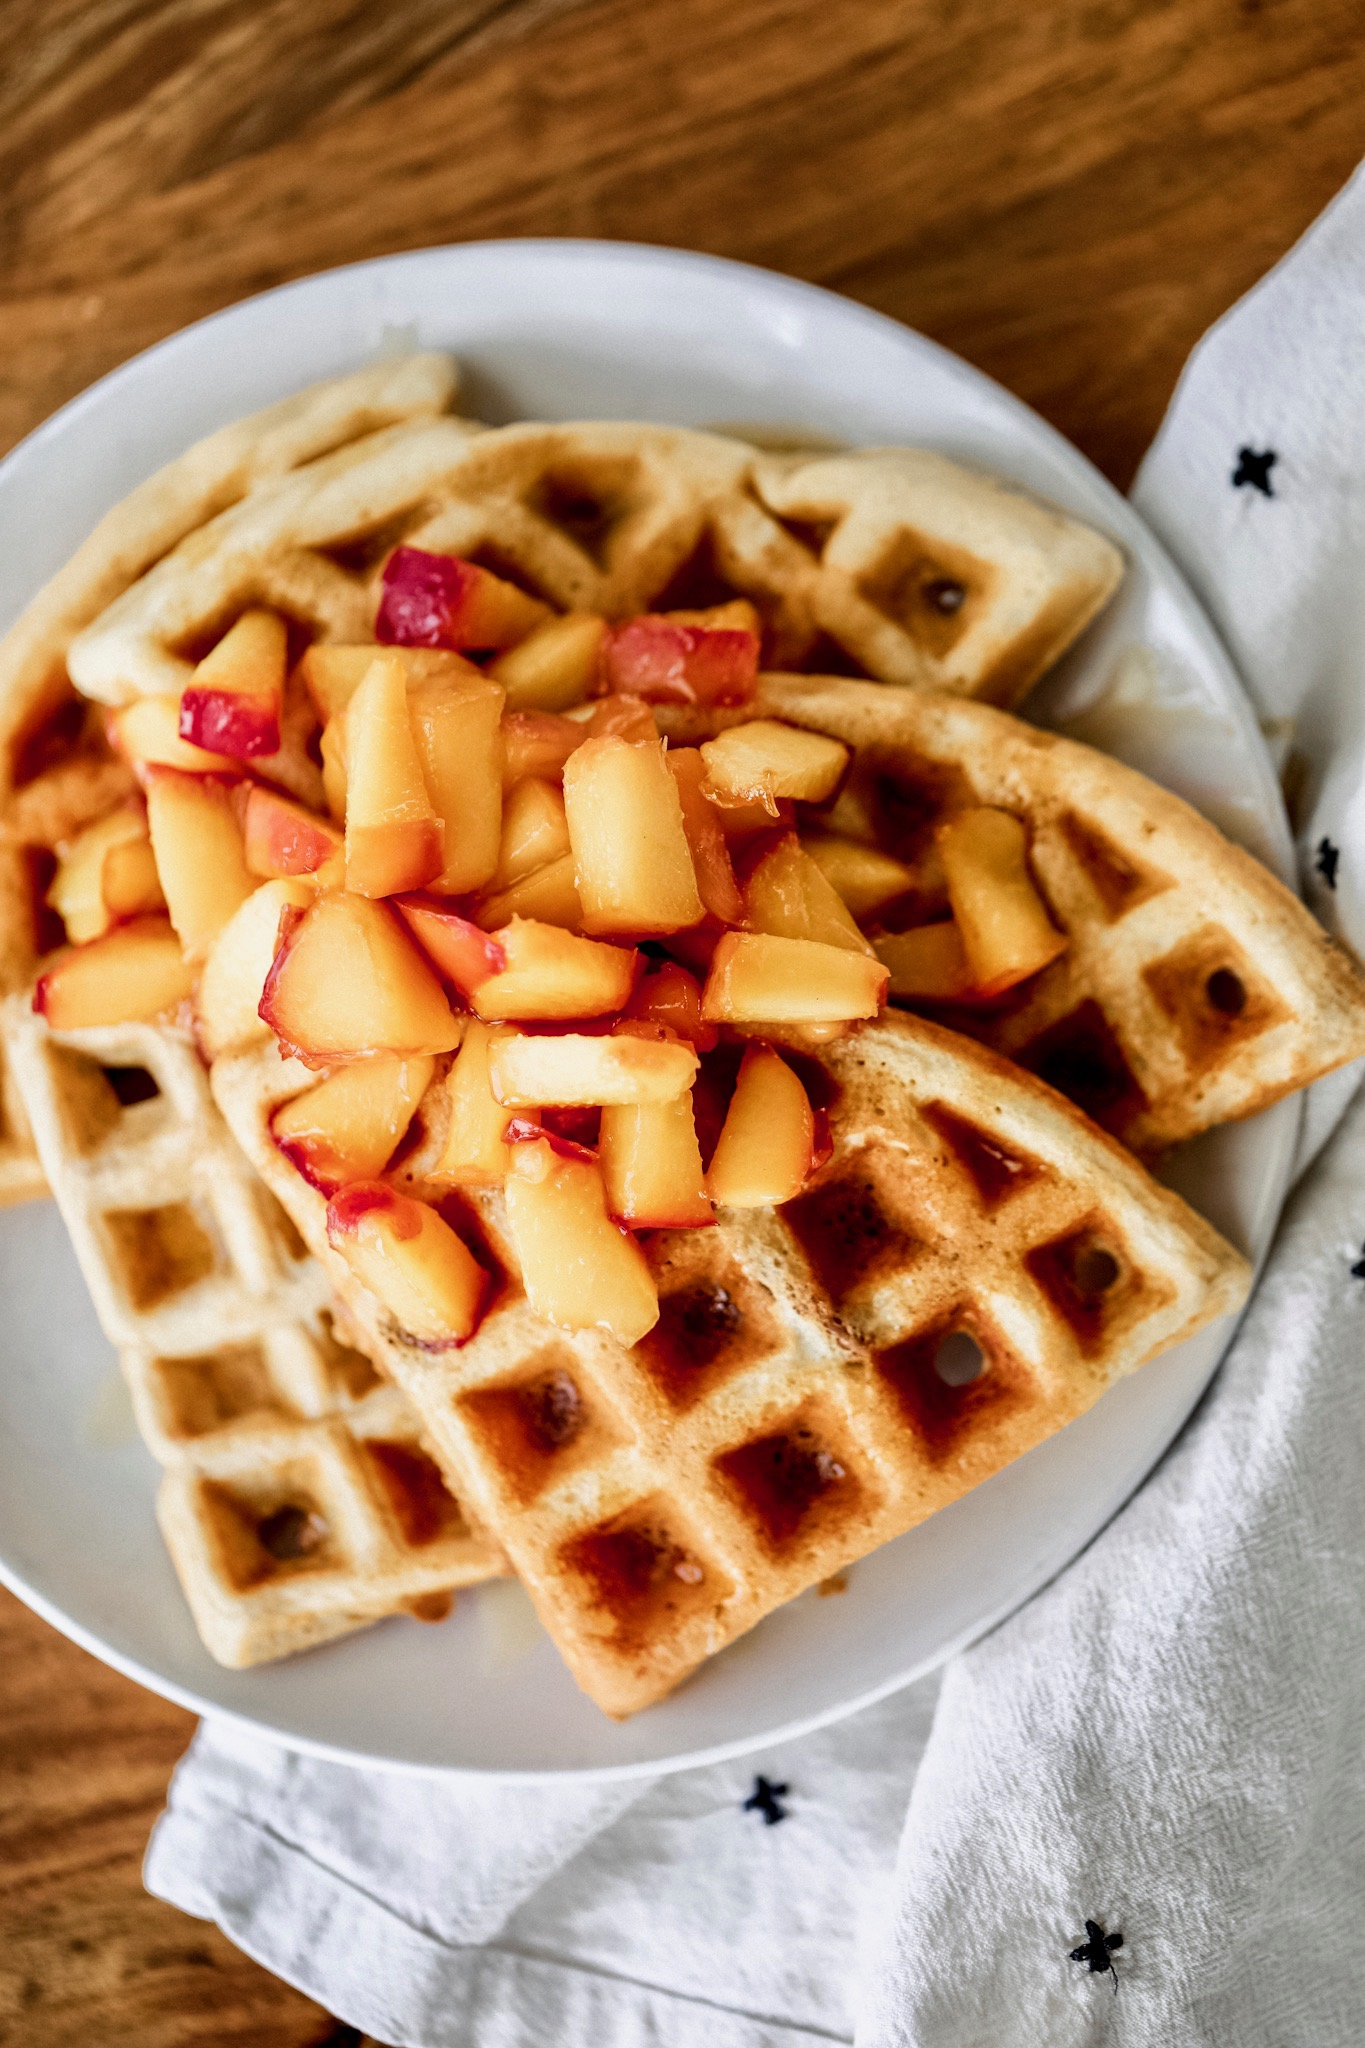 Cinnamon Pecan Waffles with caramelized peaches - Make 4 servings355 calories / 9.5F / 45.5C / 22 P